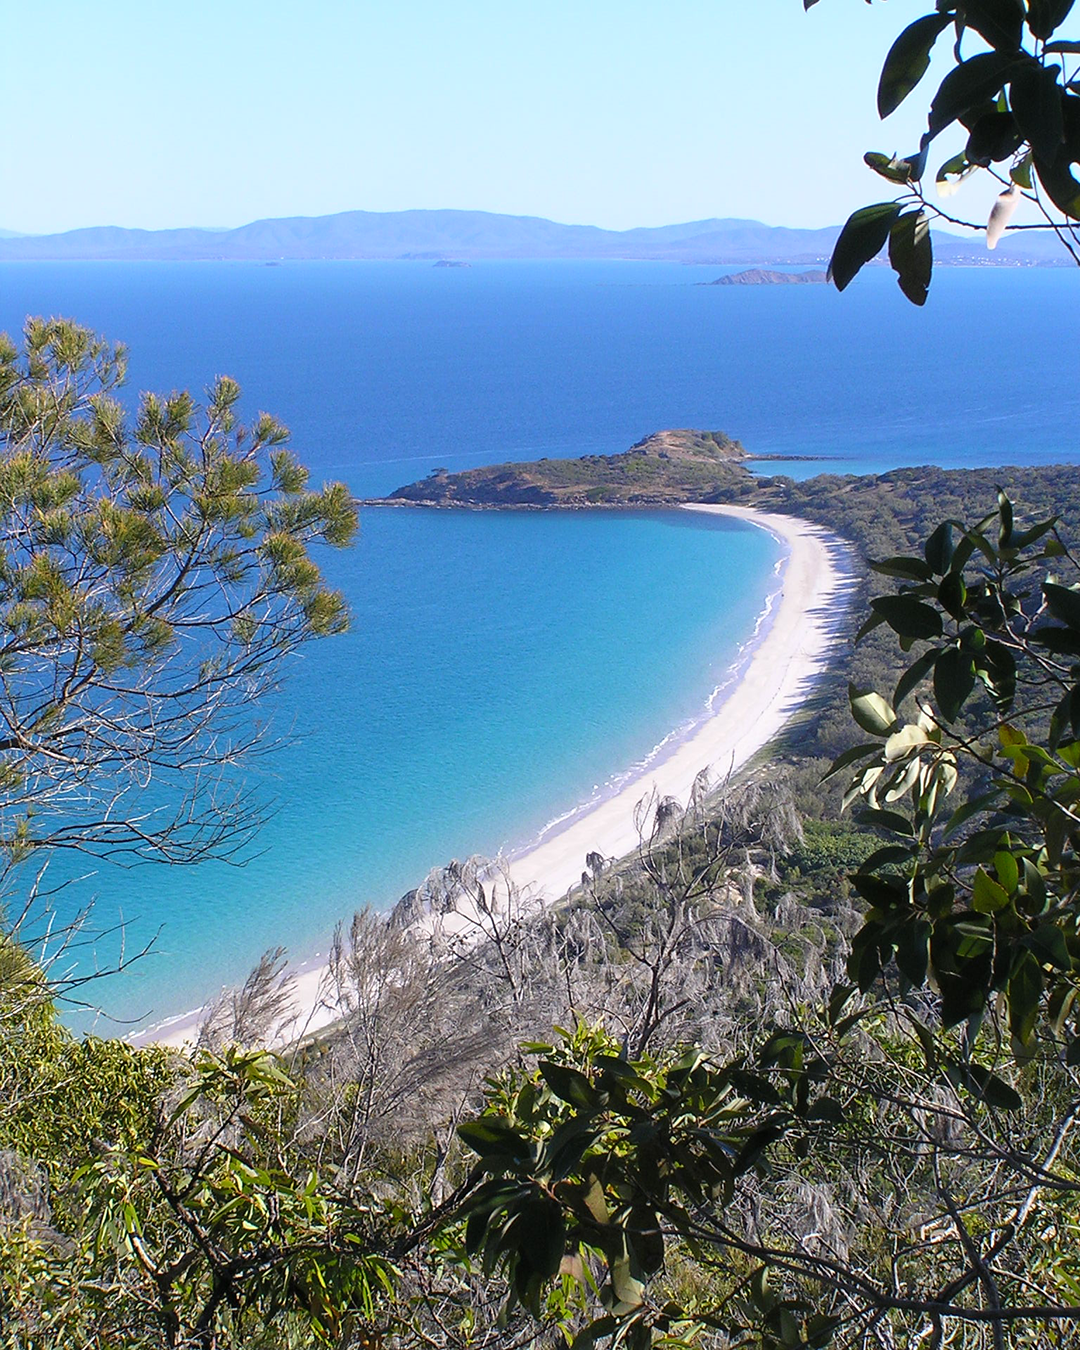 Stunning view from above of Great Keppel Island featuring blue ocean, white sand and lush green forrest.